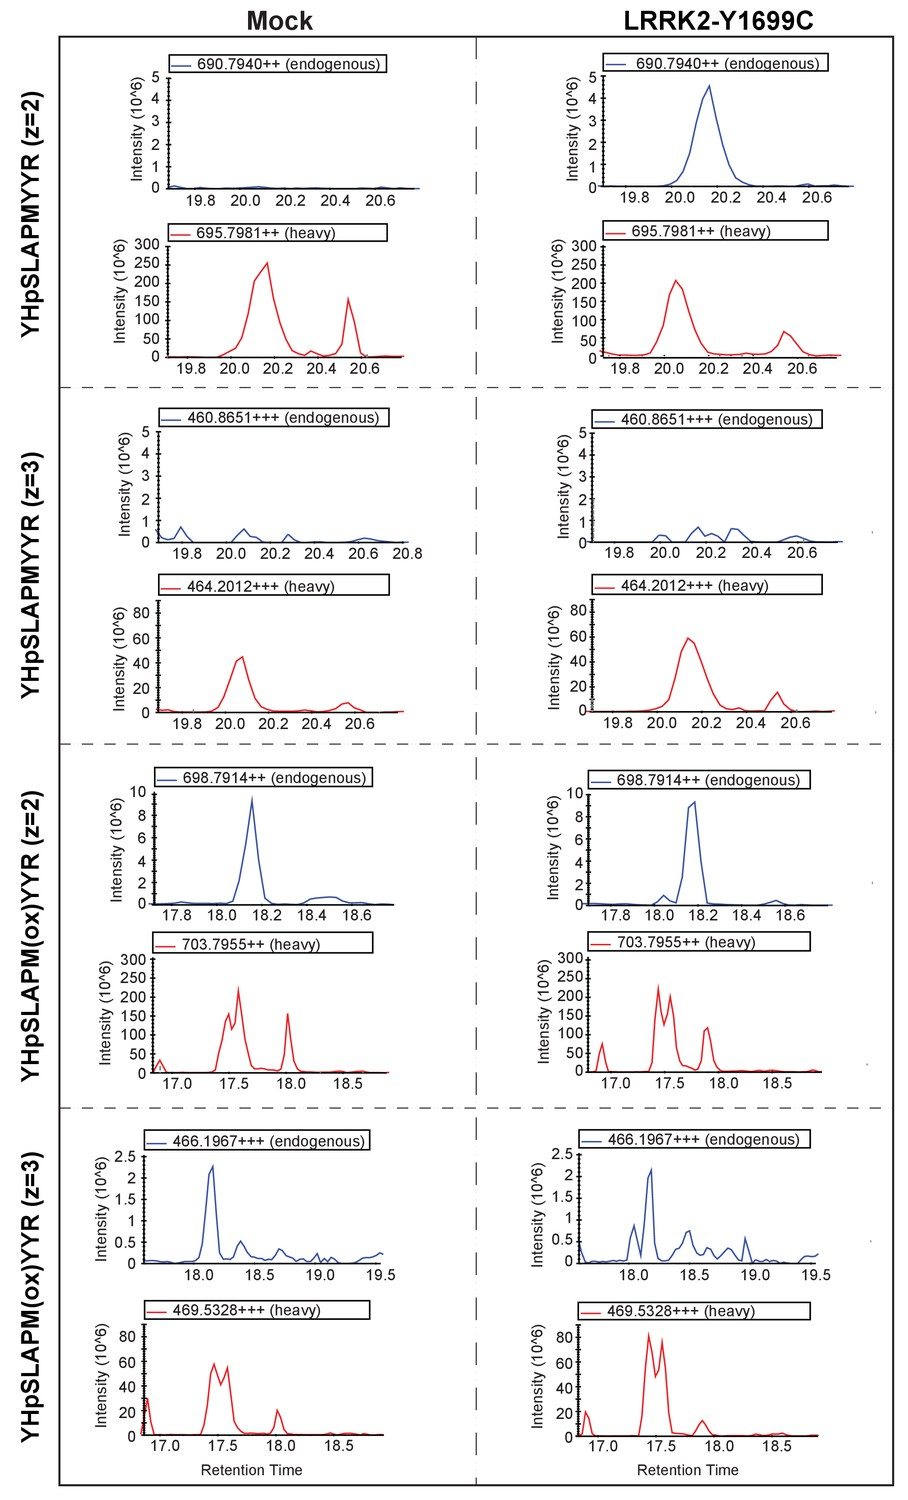 Systematic Proteomic Analysis Of Lrrk2 Mediated Rab Gtpase 690 Double Light Switch Wiring Diagram Rab5a Was Immunoprecipitated From Mock Or Y1699c Transfected Hek293 Cells